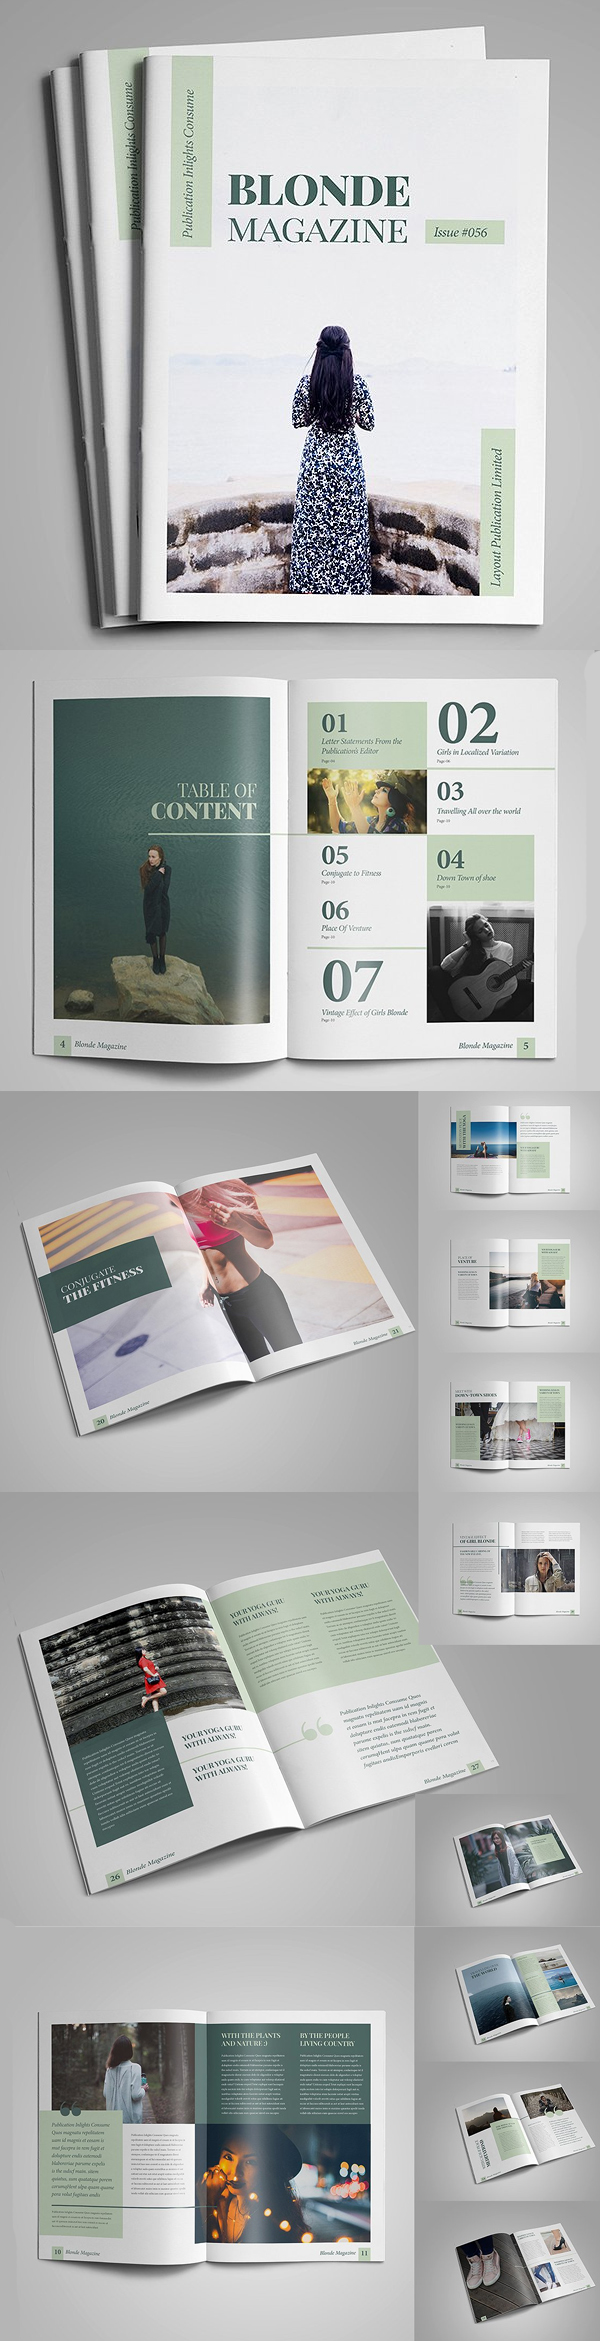 100 Professional Corporate Brochure Templates - 21